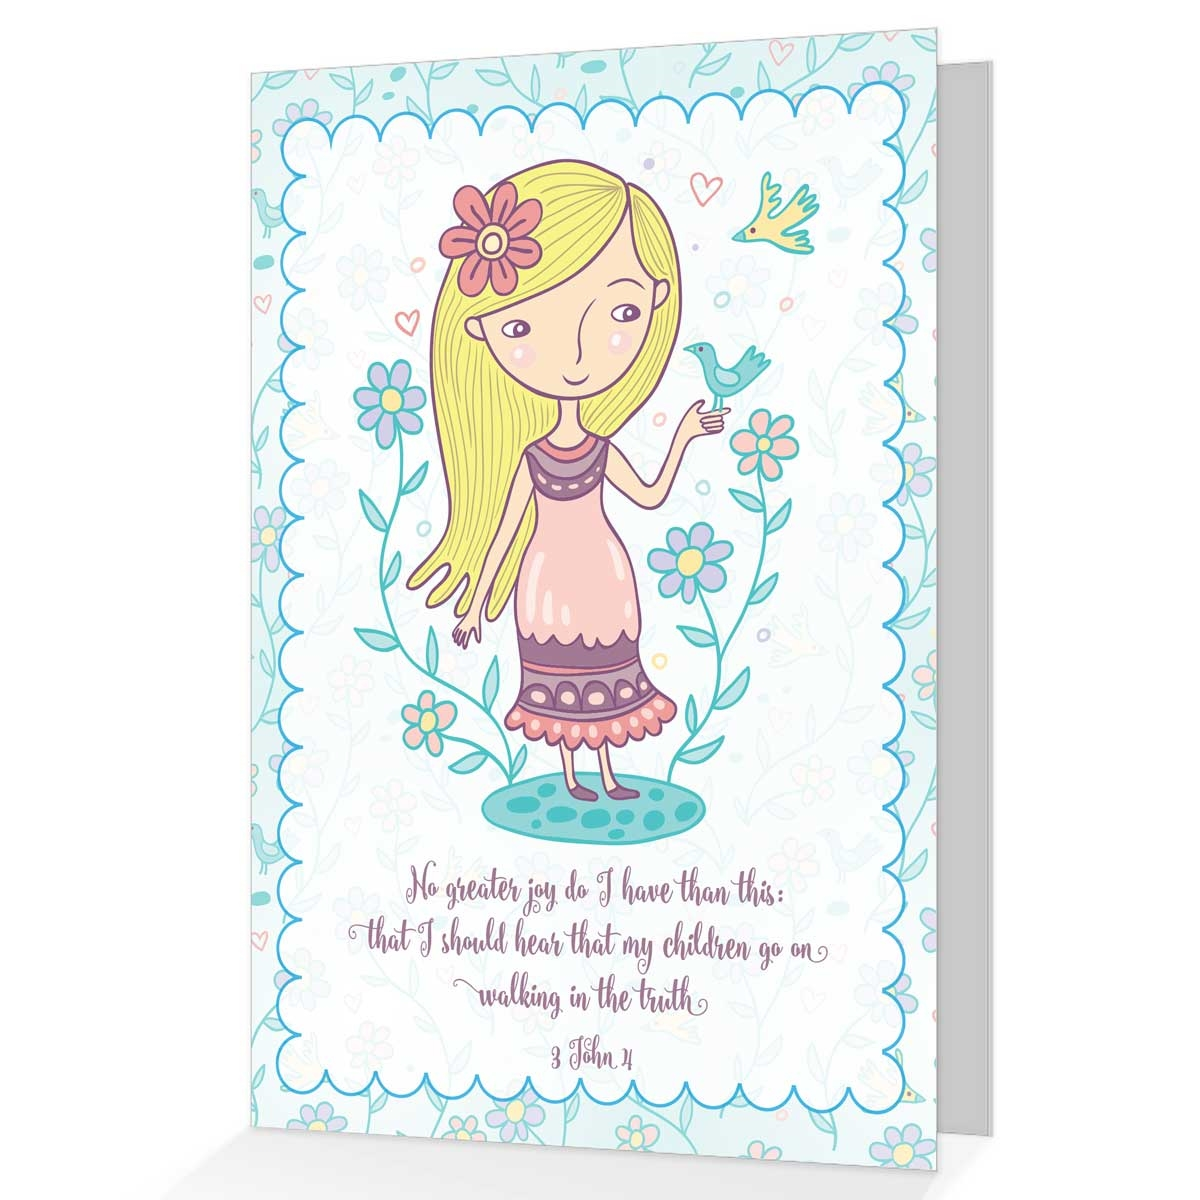 Commendation Greeting Card Jw Theocratic Goal Greeting Card